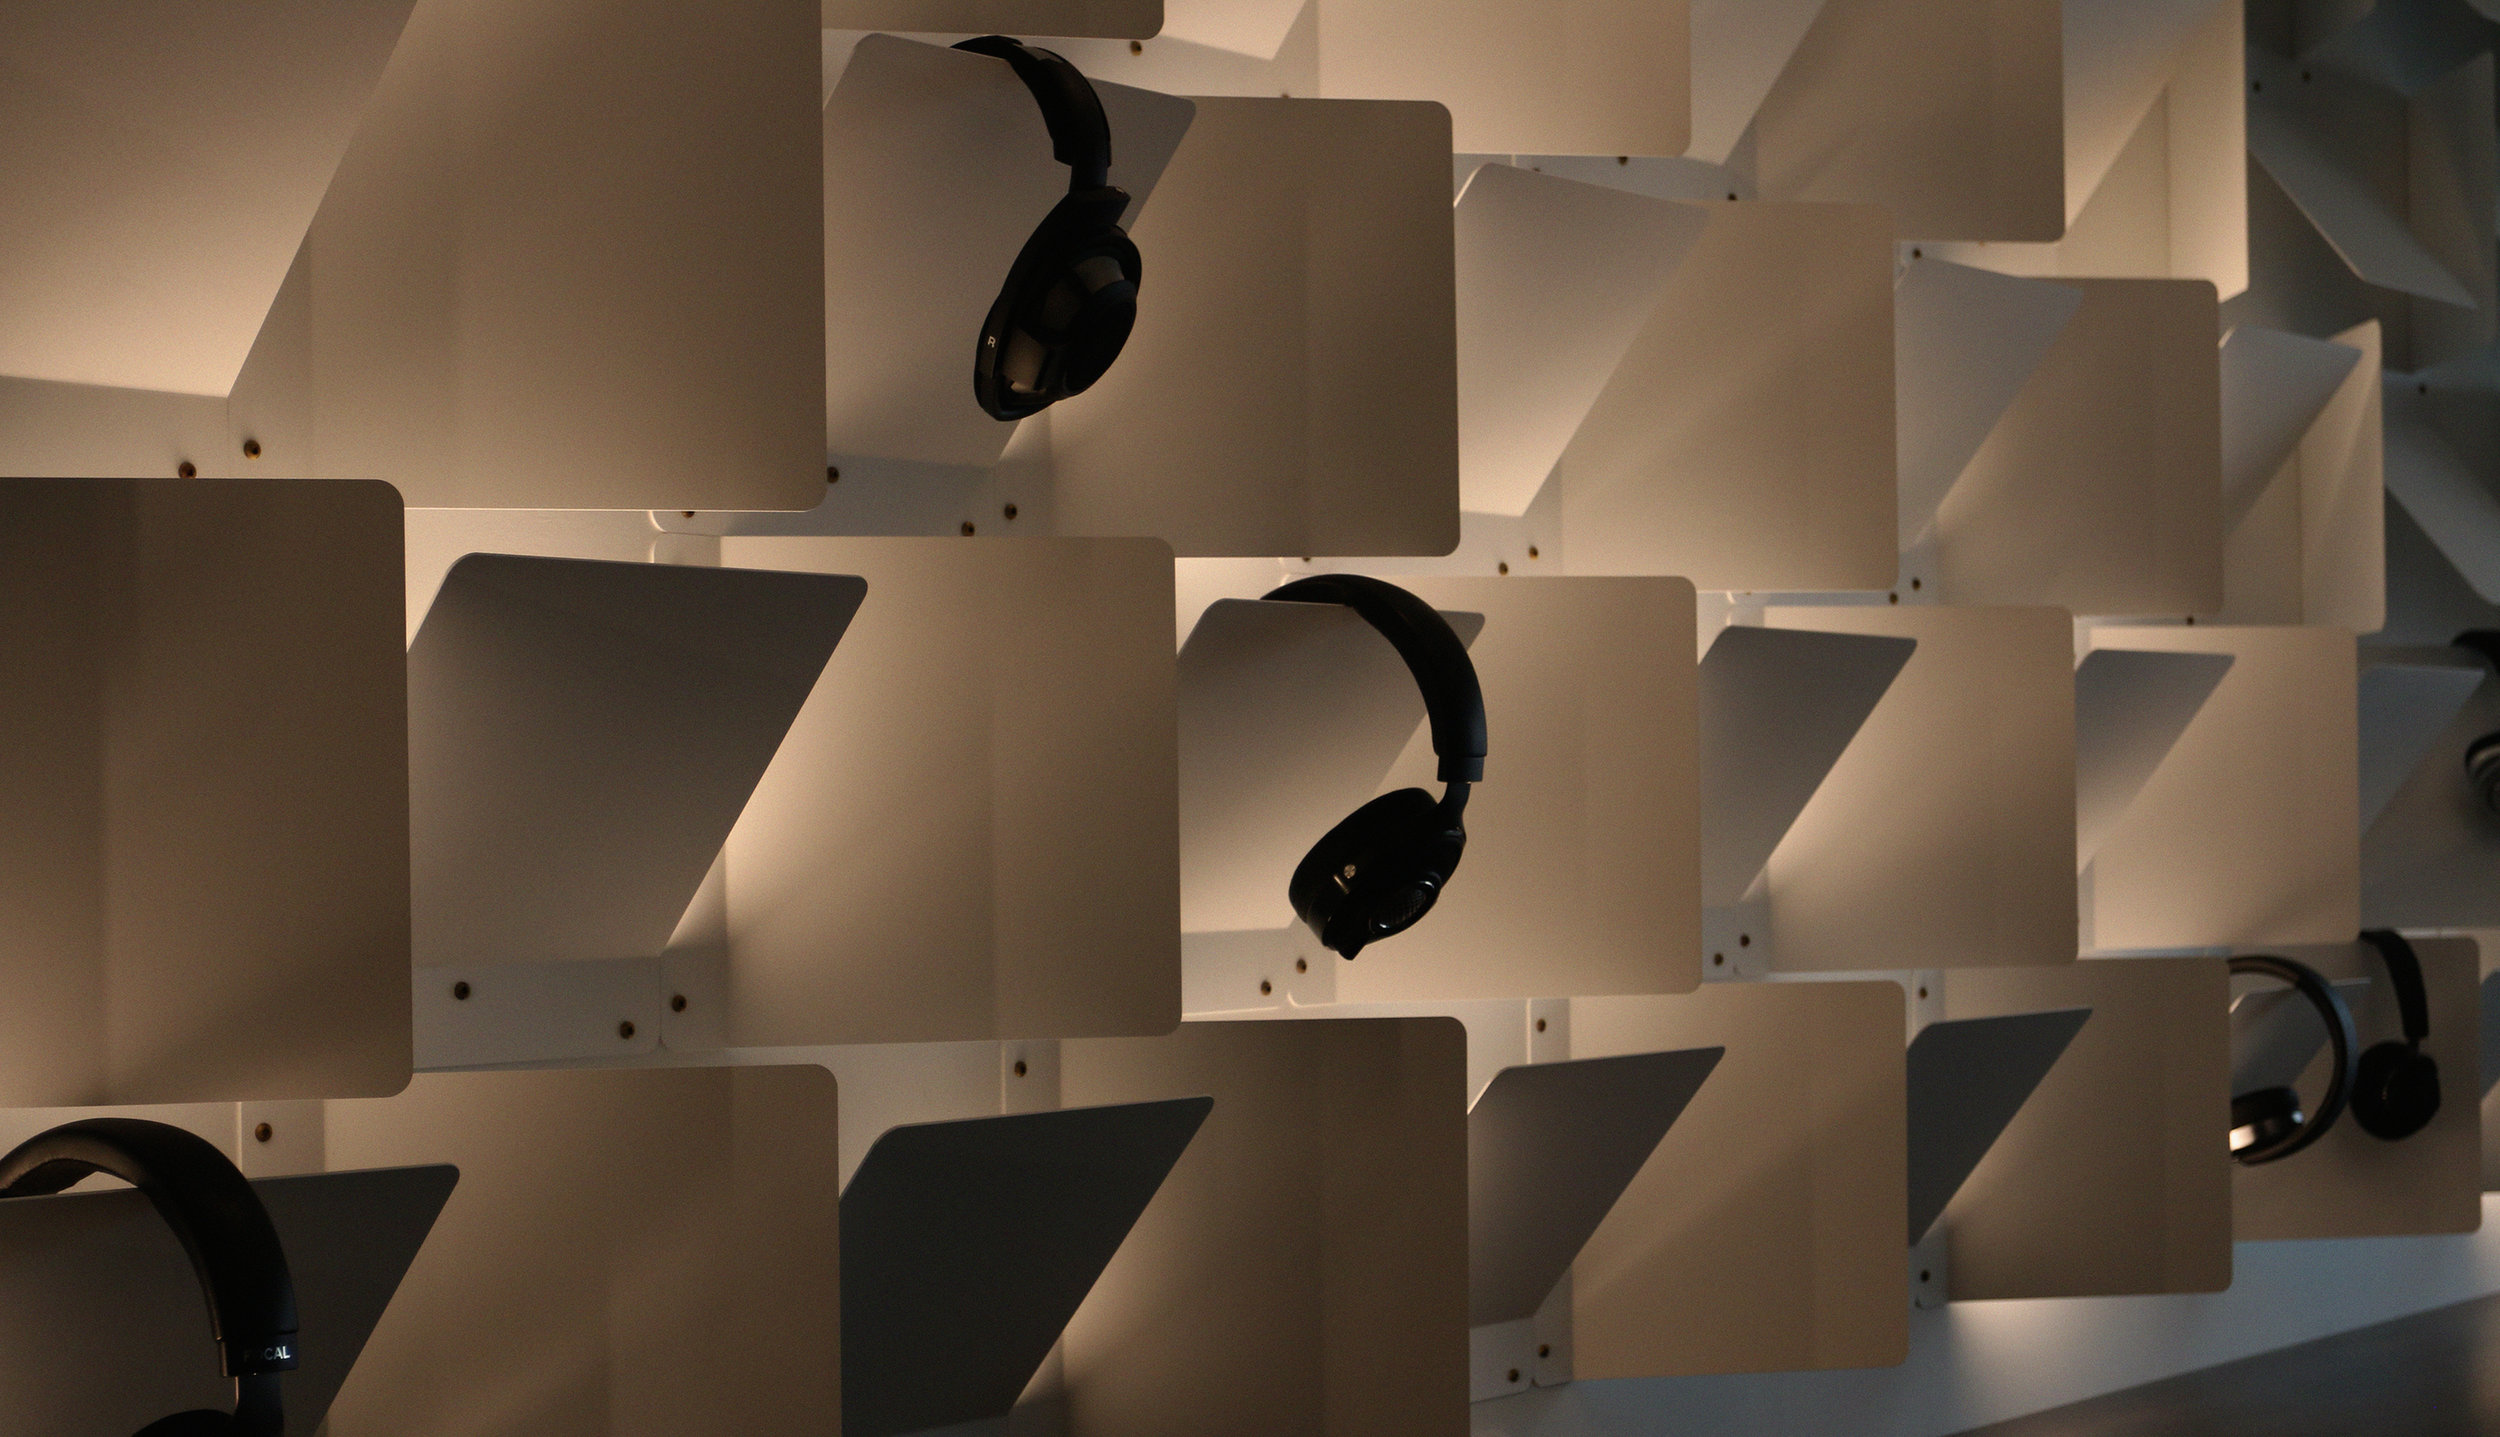 Metal panel modules being used as display infrastructure for headphones